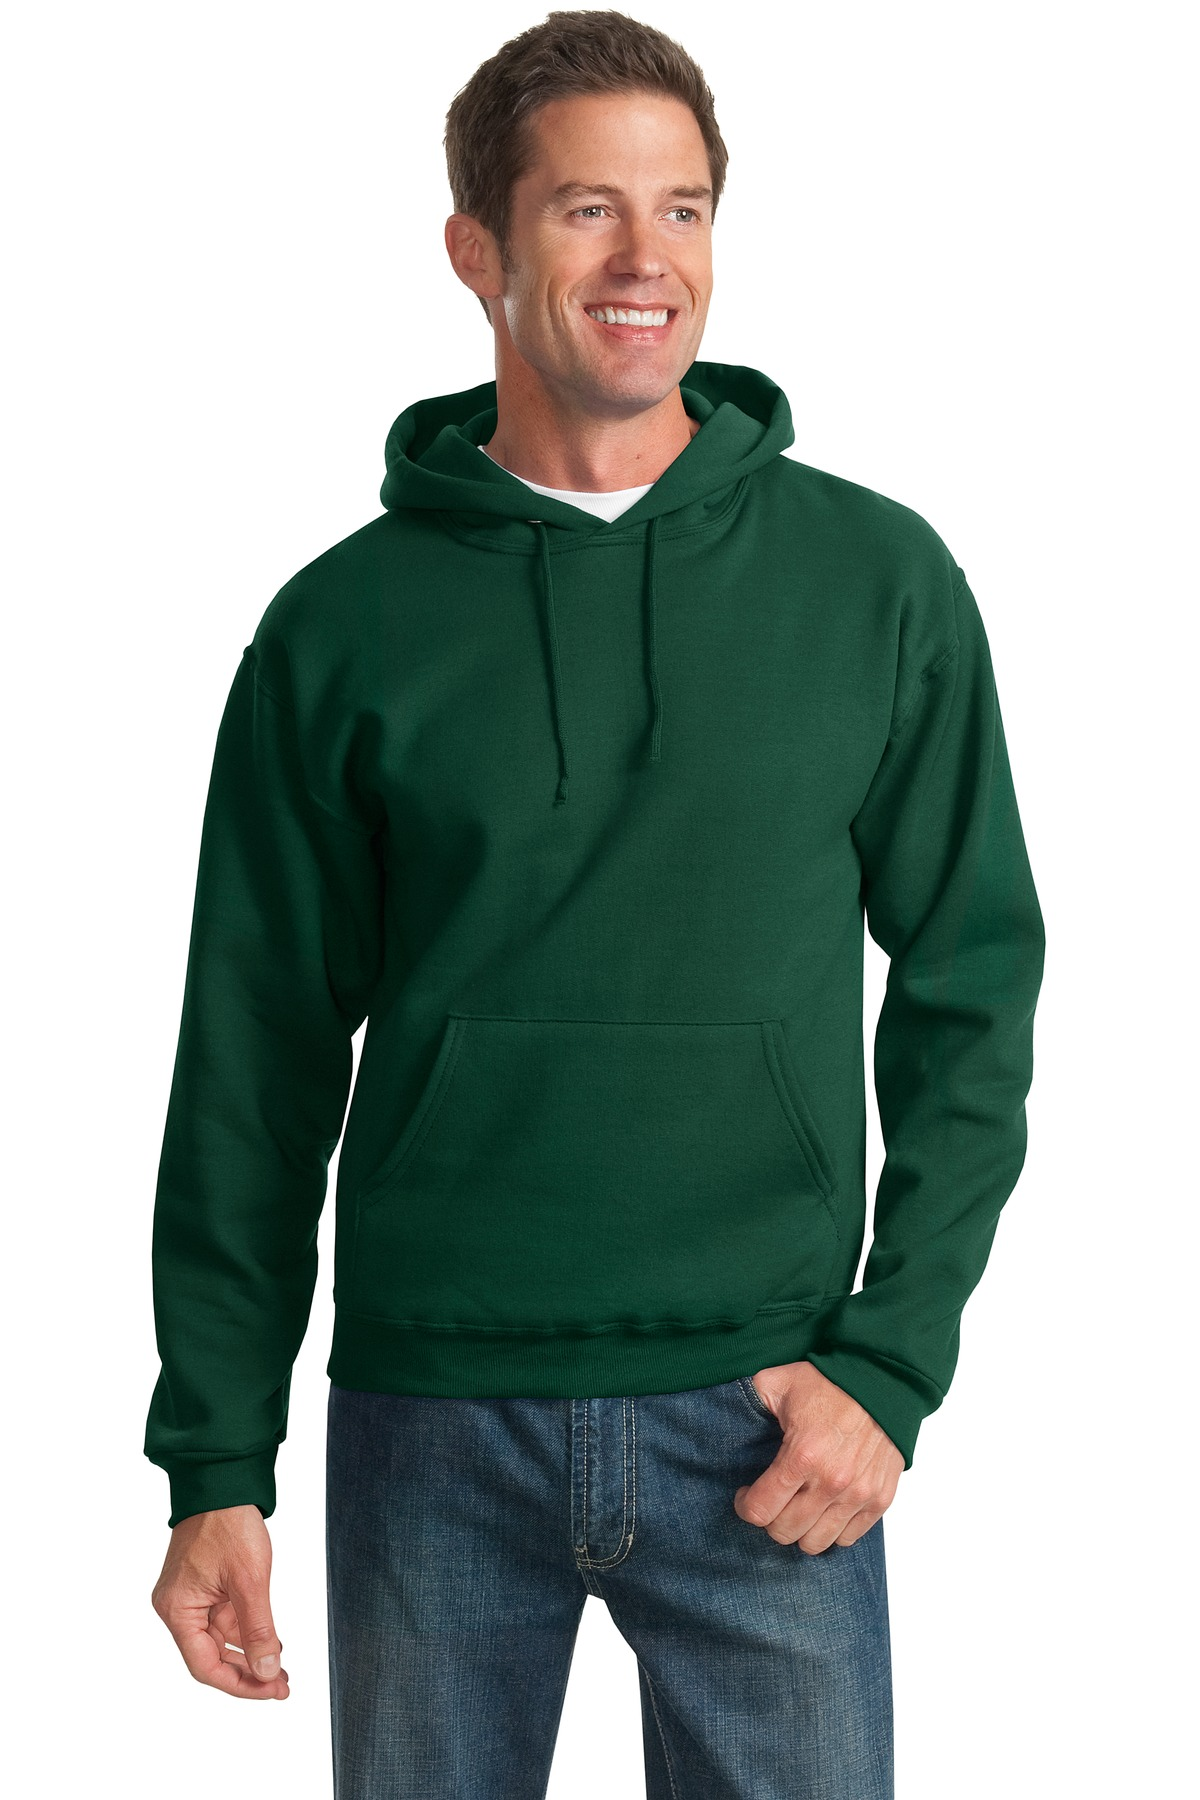 JERZEES ®  - NuBlend ®  Pullover Hooded Sweatshirt.  996M - Forest Green